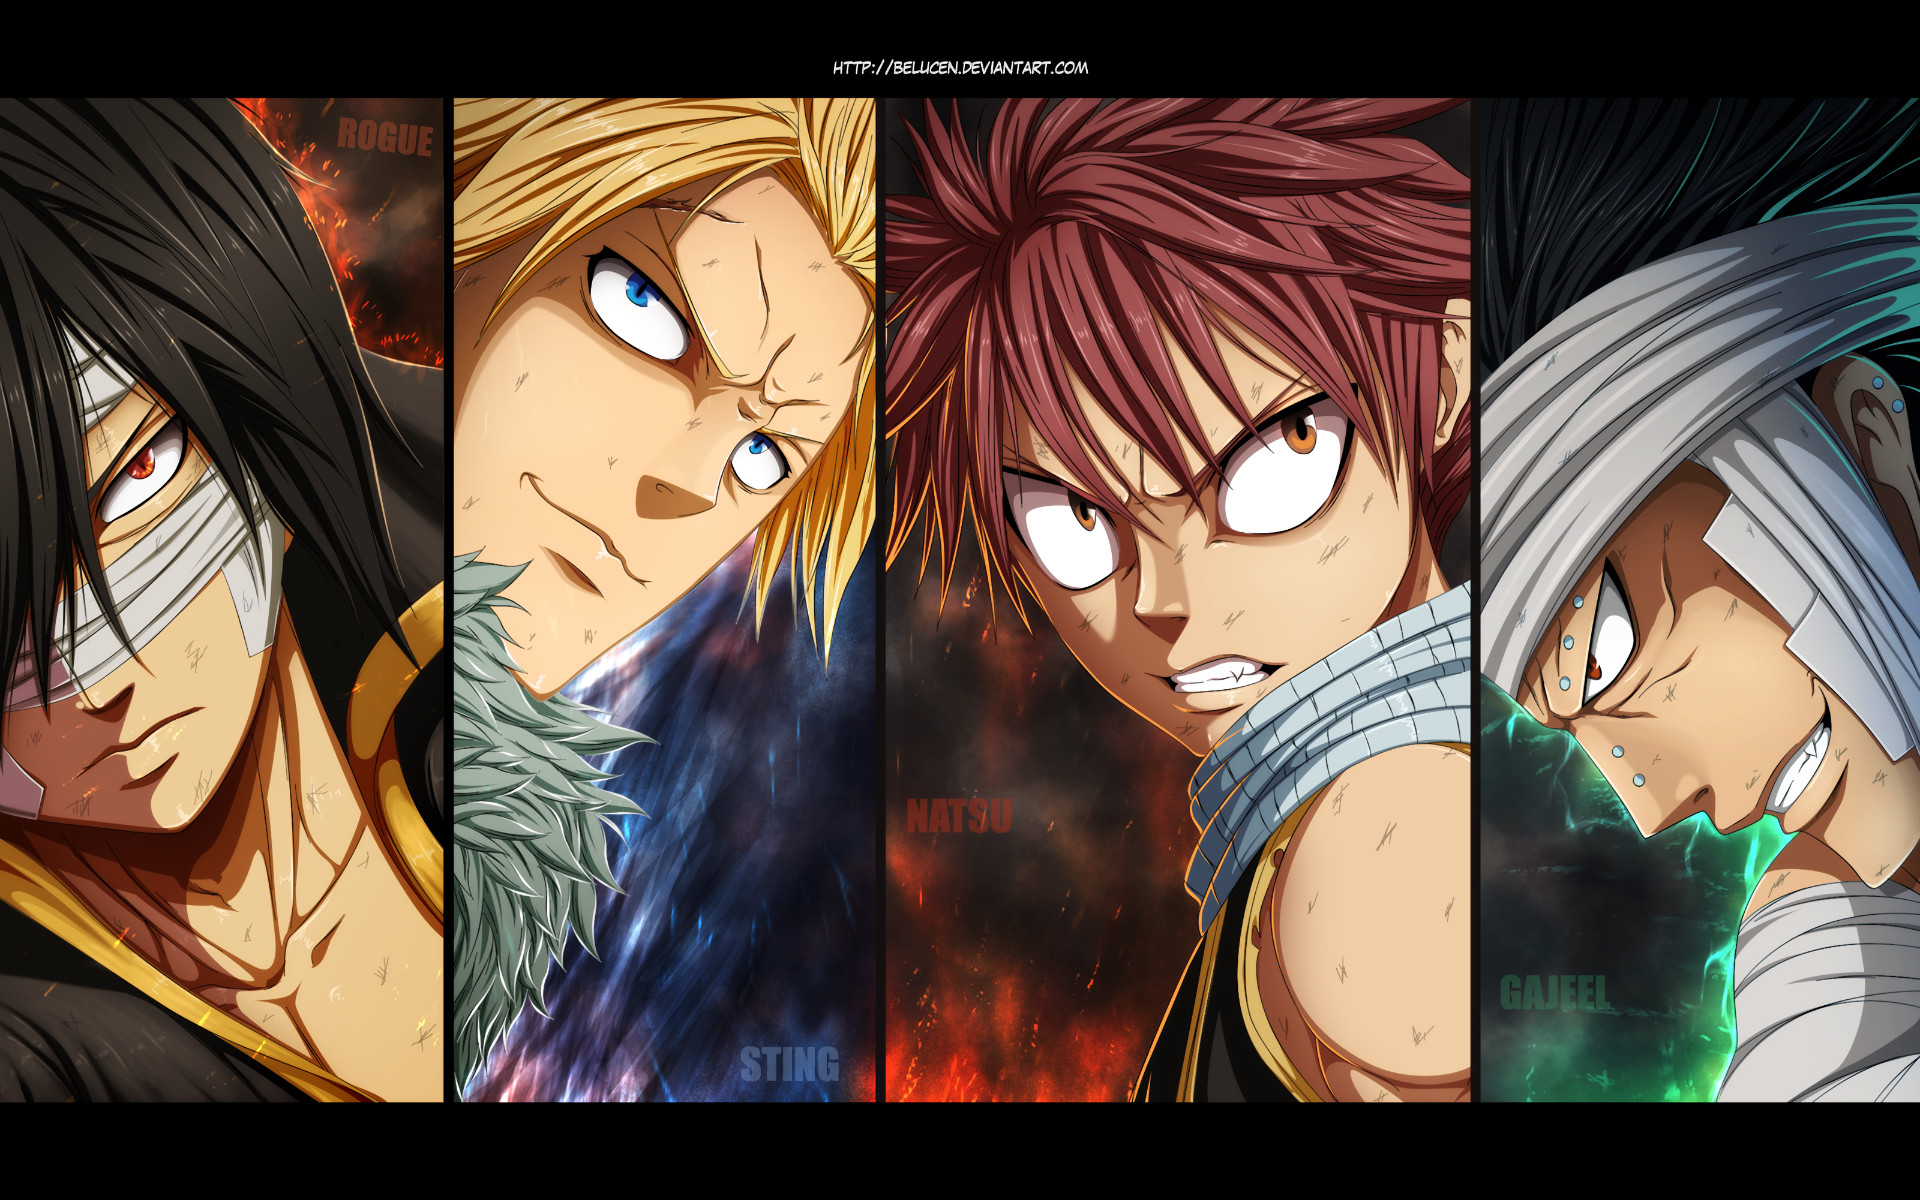 1920x1200 Anime - Fairy Tail Rogue Cheney Sting Eucliffe Natsu Dragneel Gajeel Redfox  Wallpaper